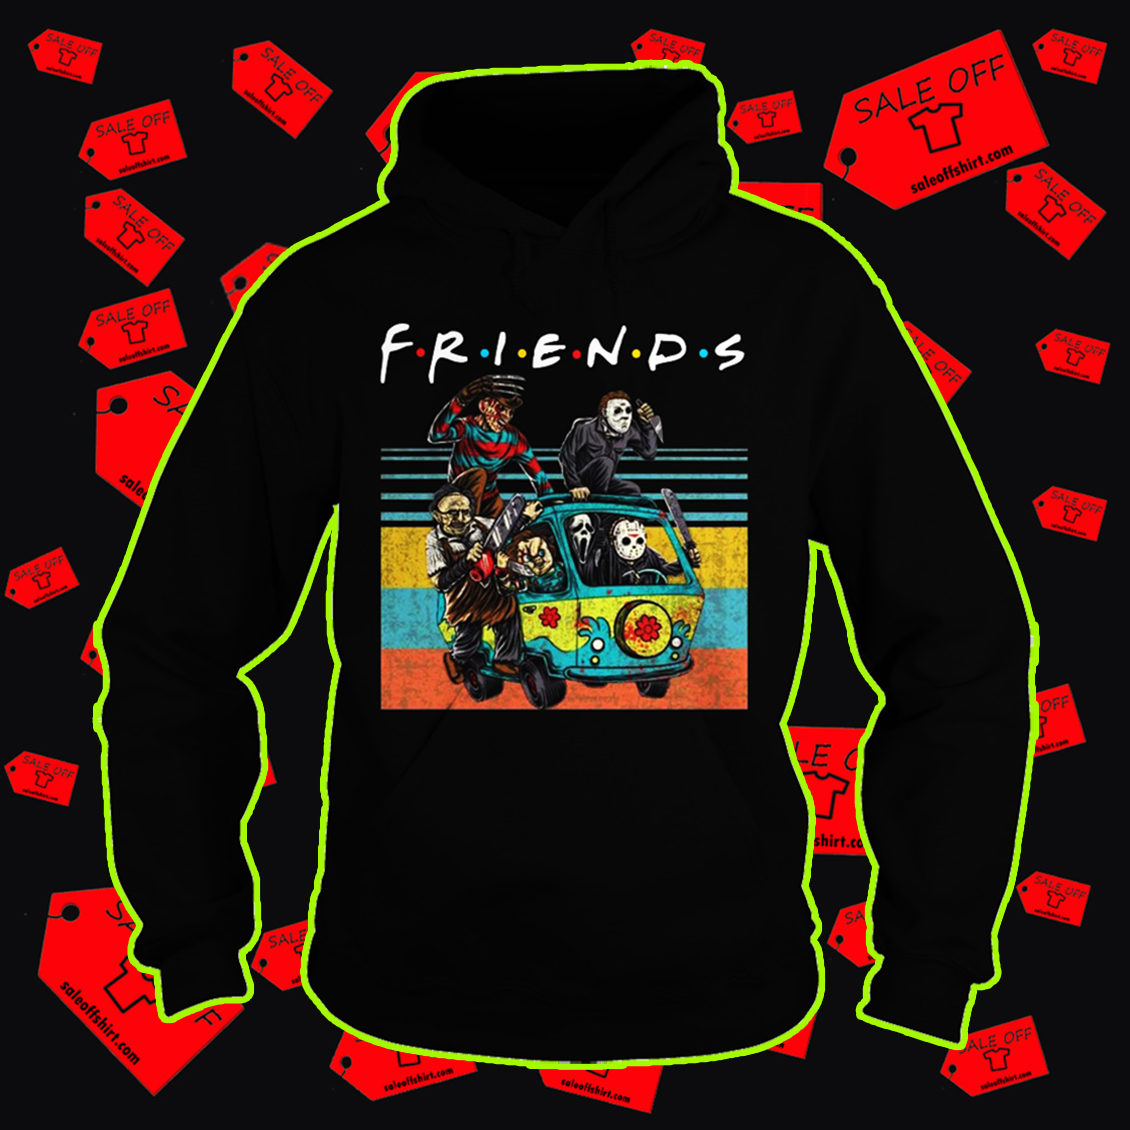 Car Horror movie characters Friends TV show hoodie